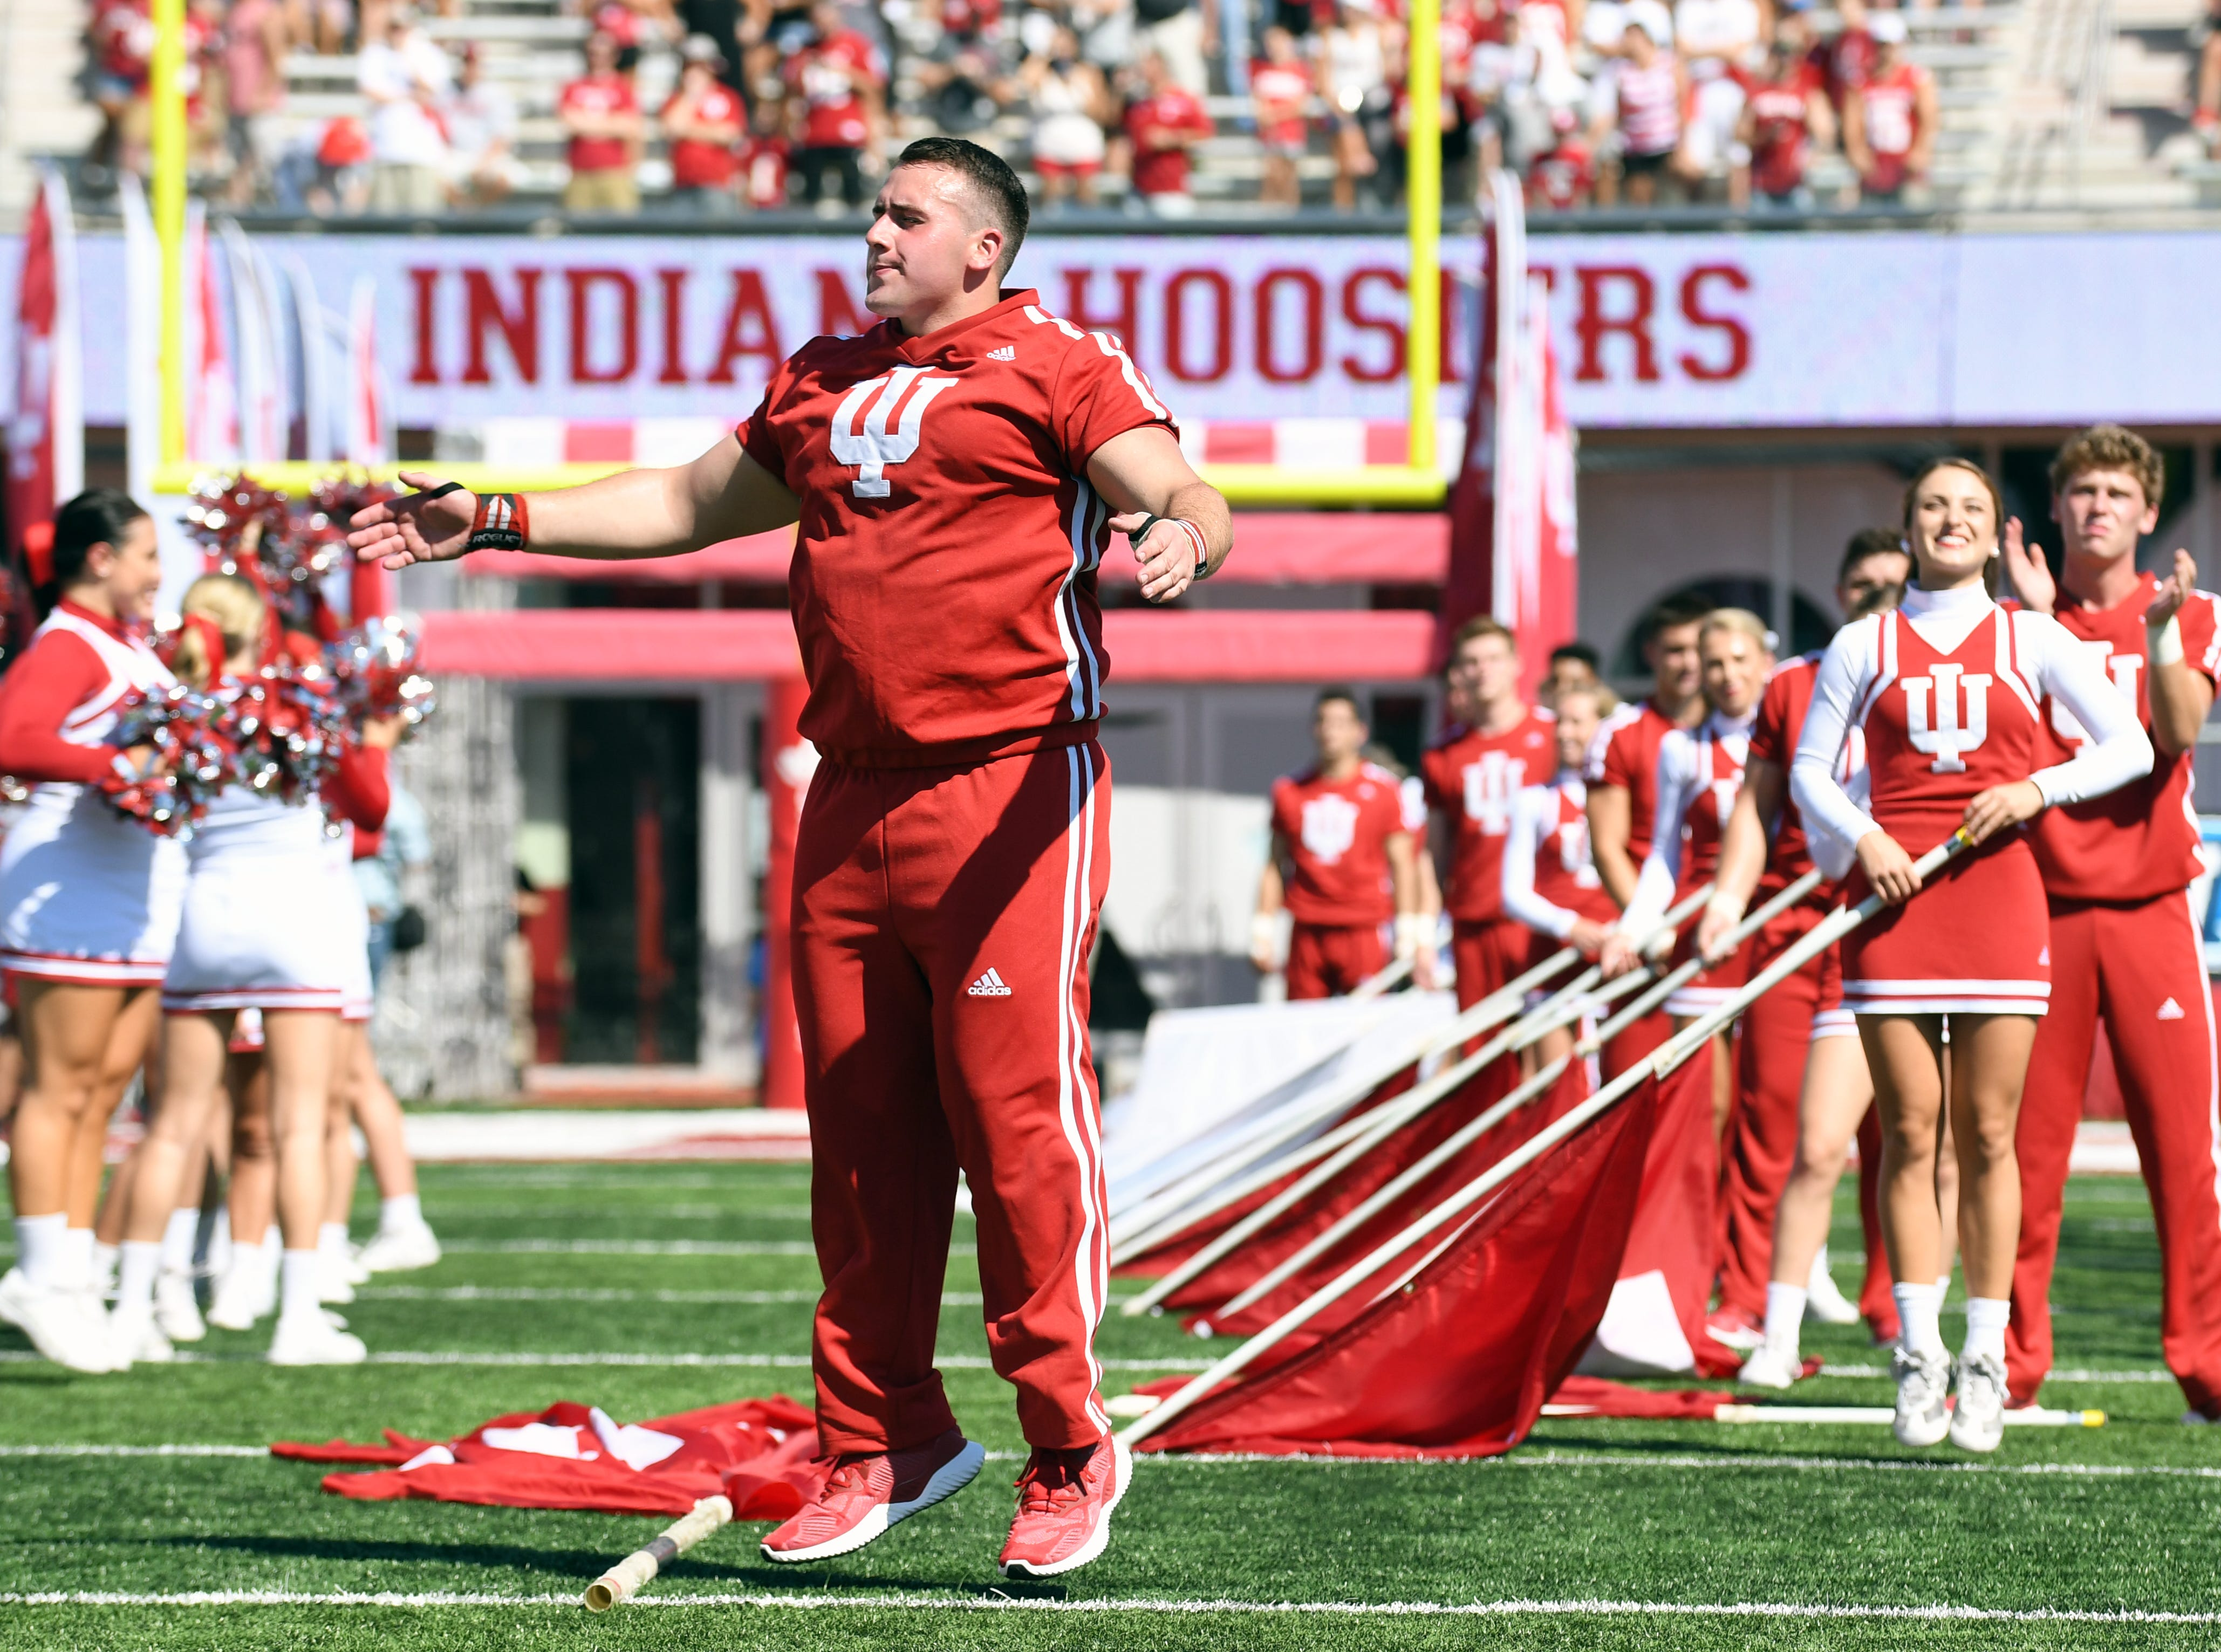 Indiana Hoosiers cheerleaders hype up the crowd prior to the start of the game against Ball State at Memorial Stadium in Bloomington, Ind., on Saturday, Sept. 15, 2018.